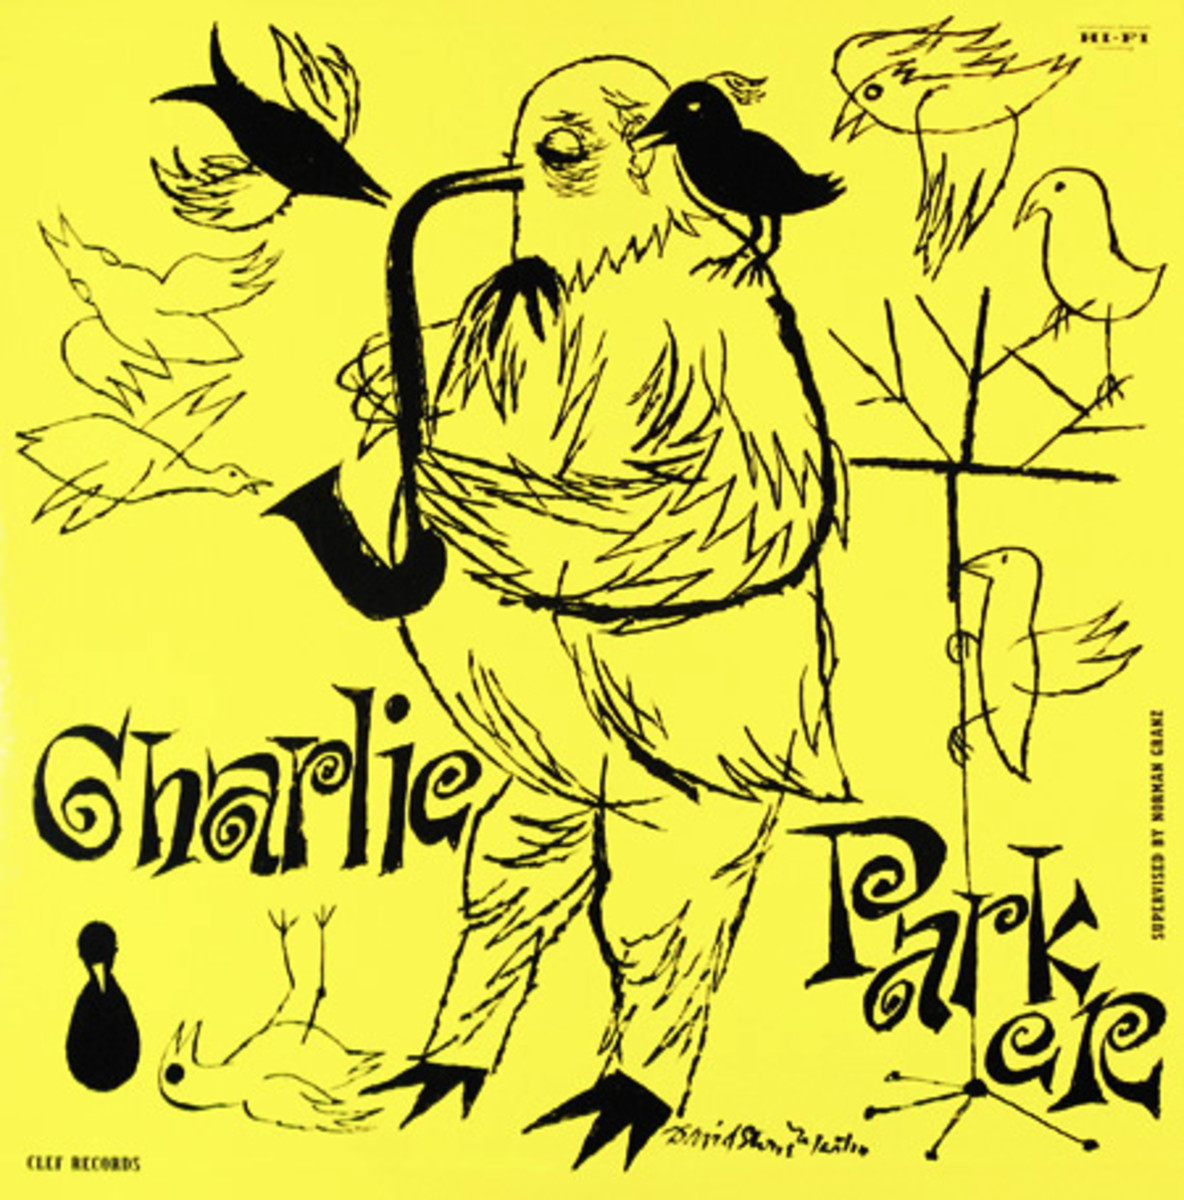 "Charlie Parker ""The Magnificent Charlie Parker"" Clef Records MG C 646 12"" LP Vinyl Record (1955) Album Cover Art by David Stone Martin"